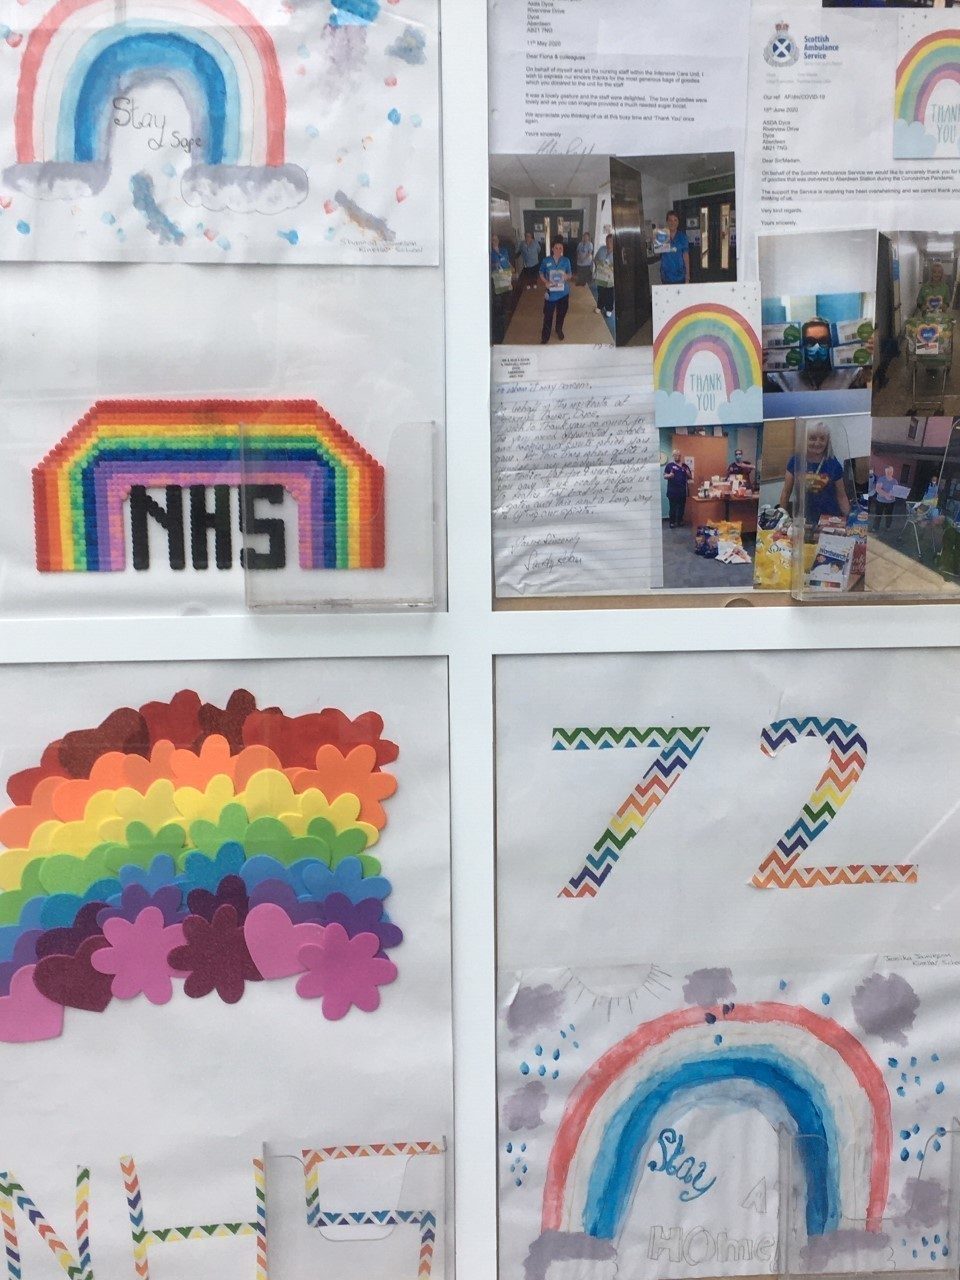 Happy 72nd birthday to the NHS | Asda Dyce